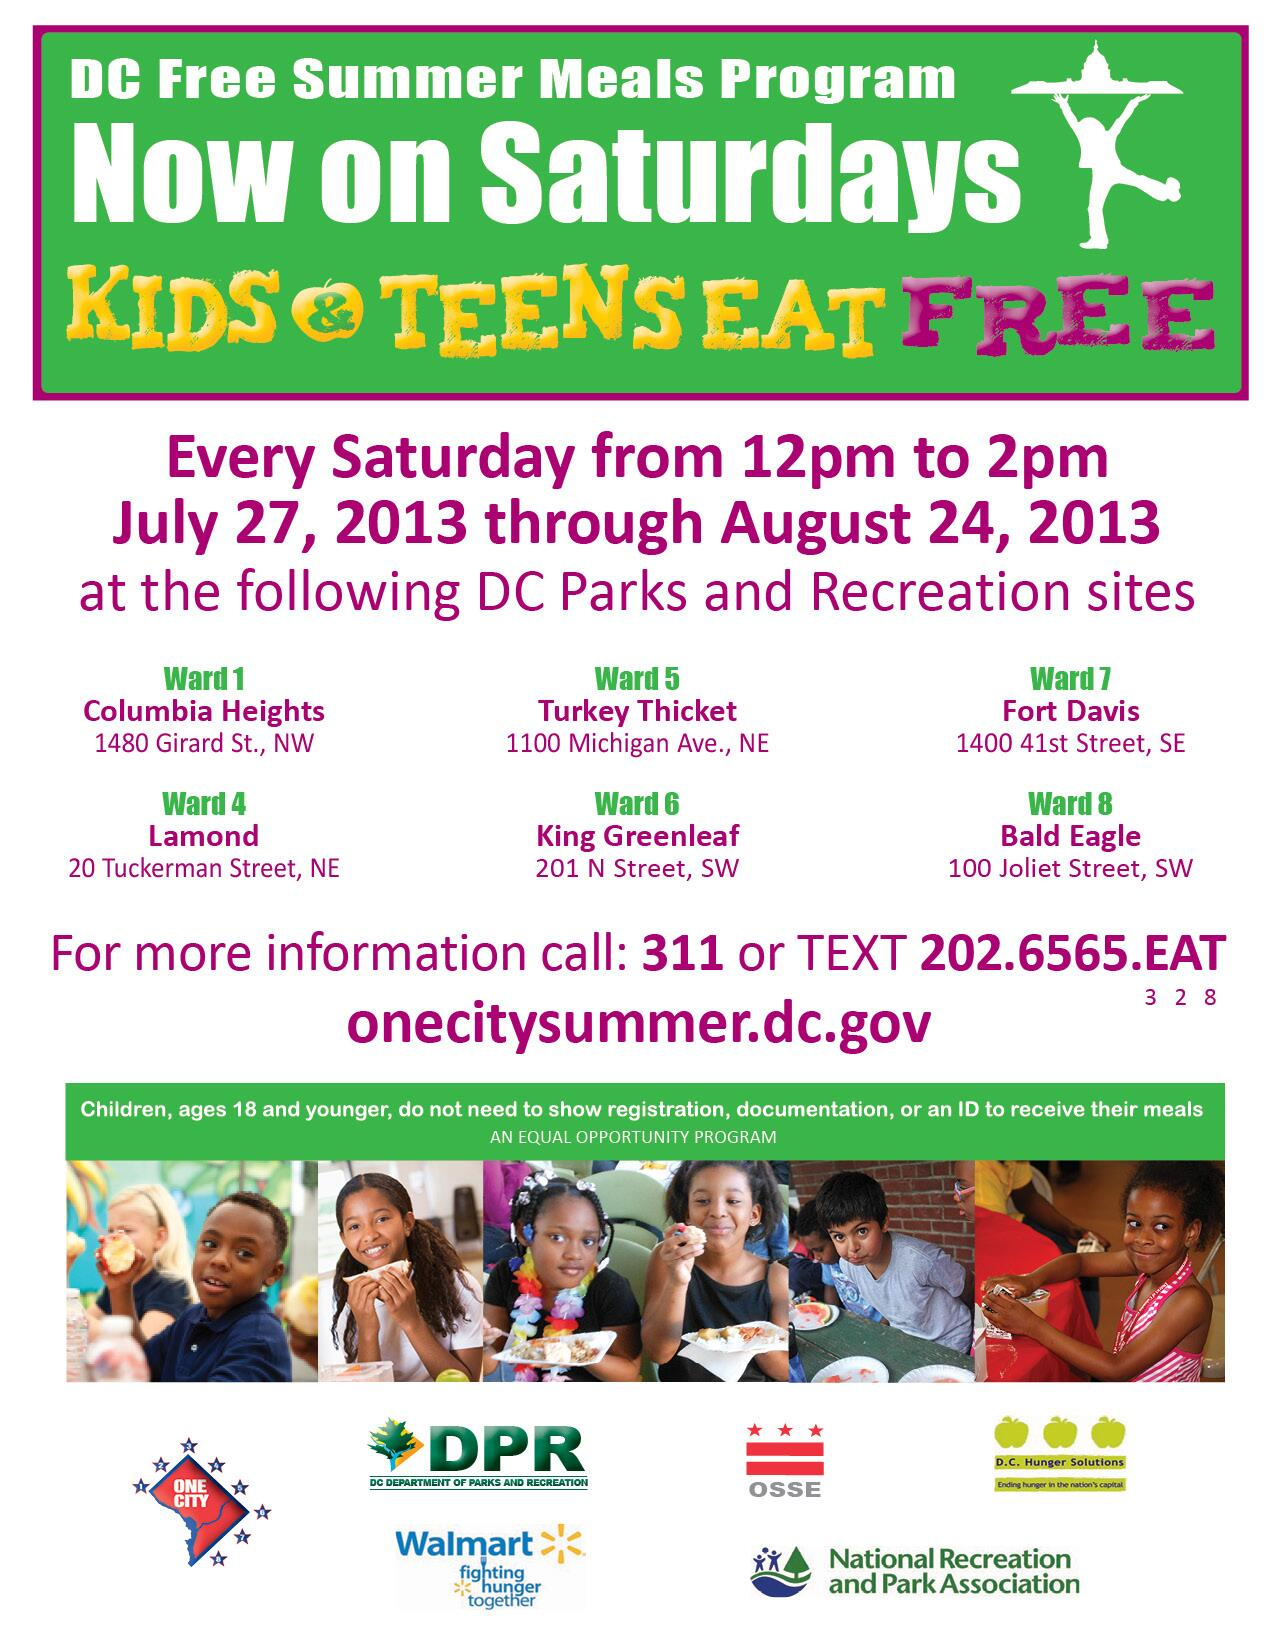 Twitter / DCDPR: #DCFreeSummerMeals program ...